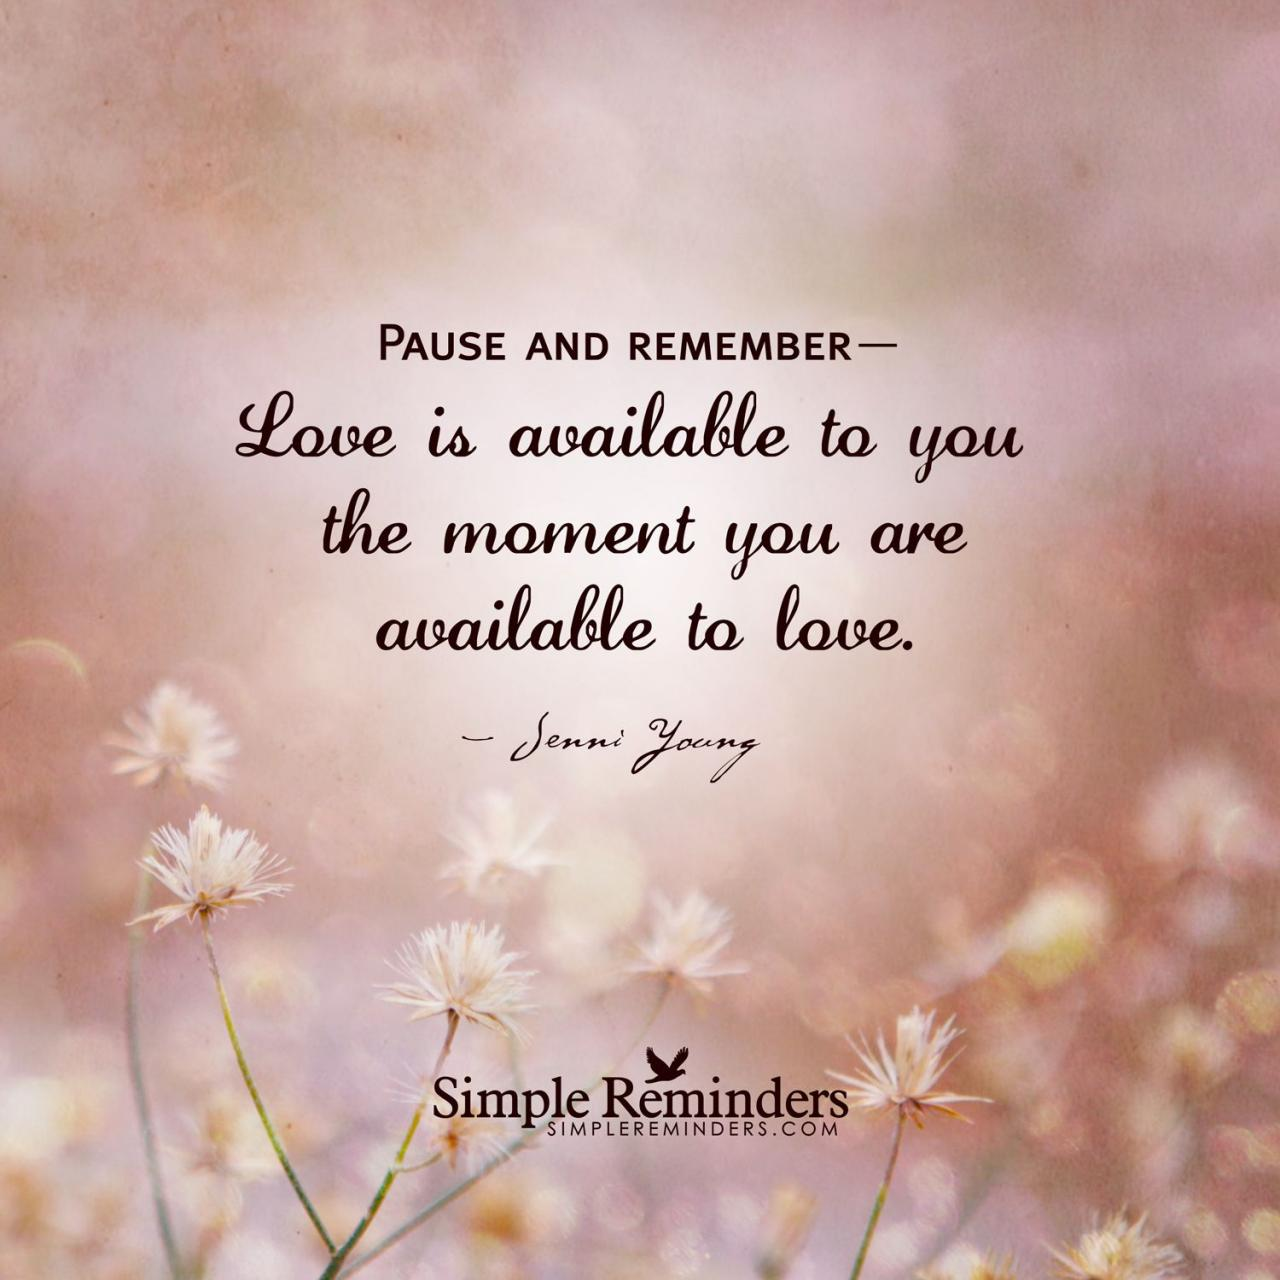 Pause And Remember Love Is Available To You The Moment You Are Available To Love Quotes About Loveyou Aresimple Reminders